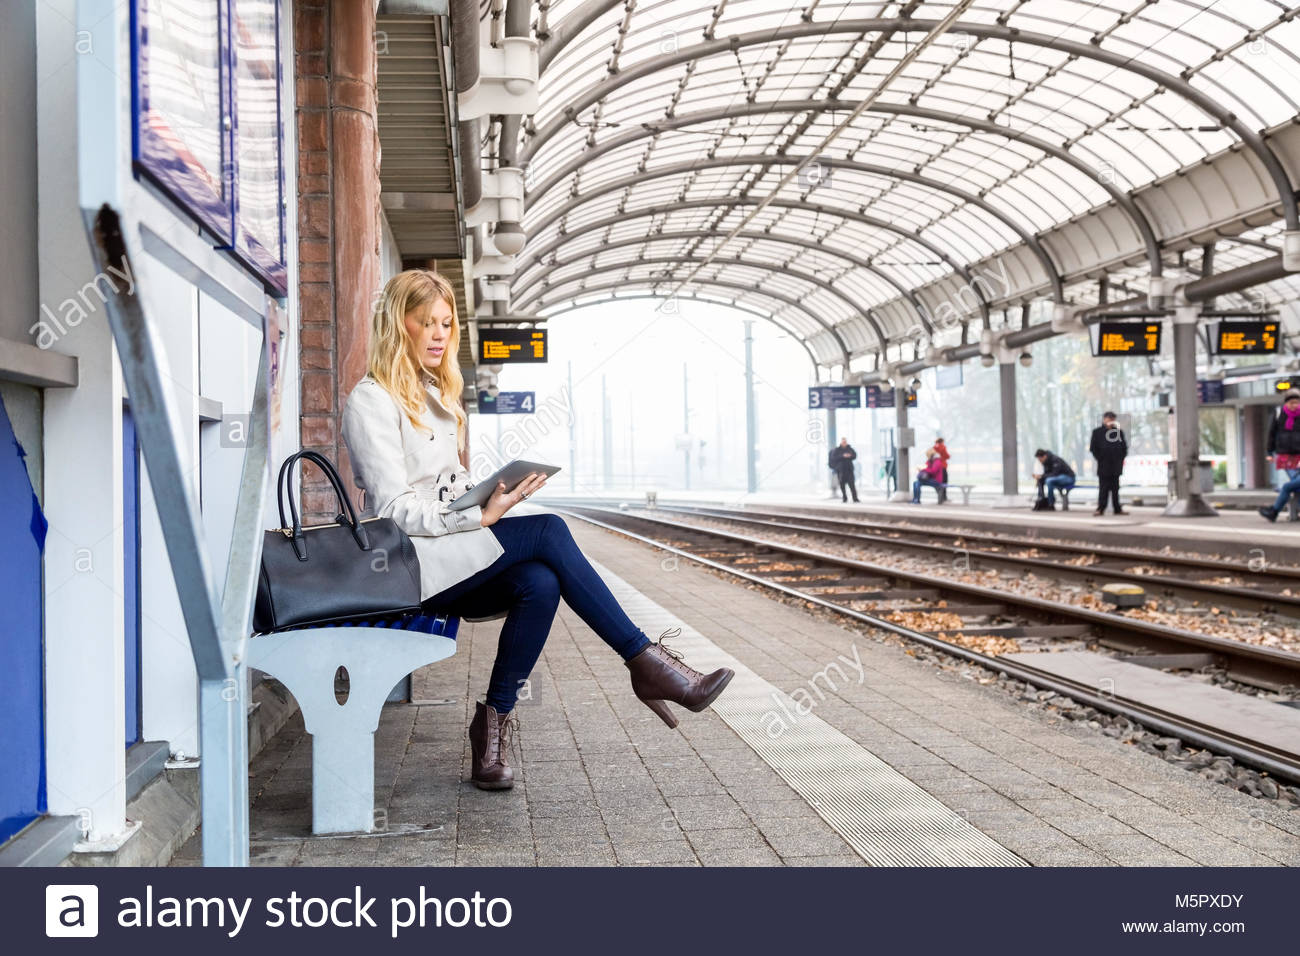 Attractive young woman waiting for a train - Stock Image